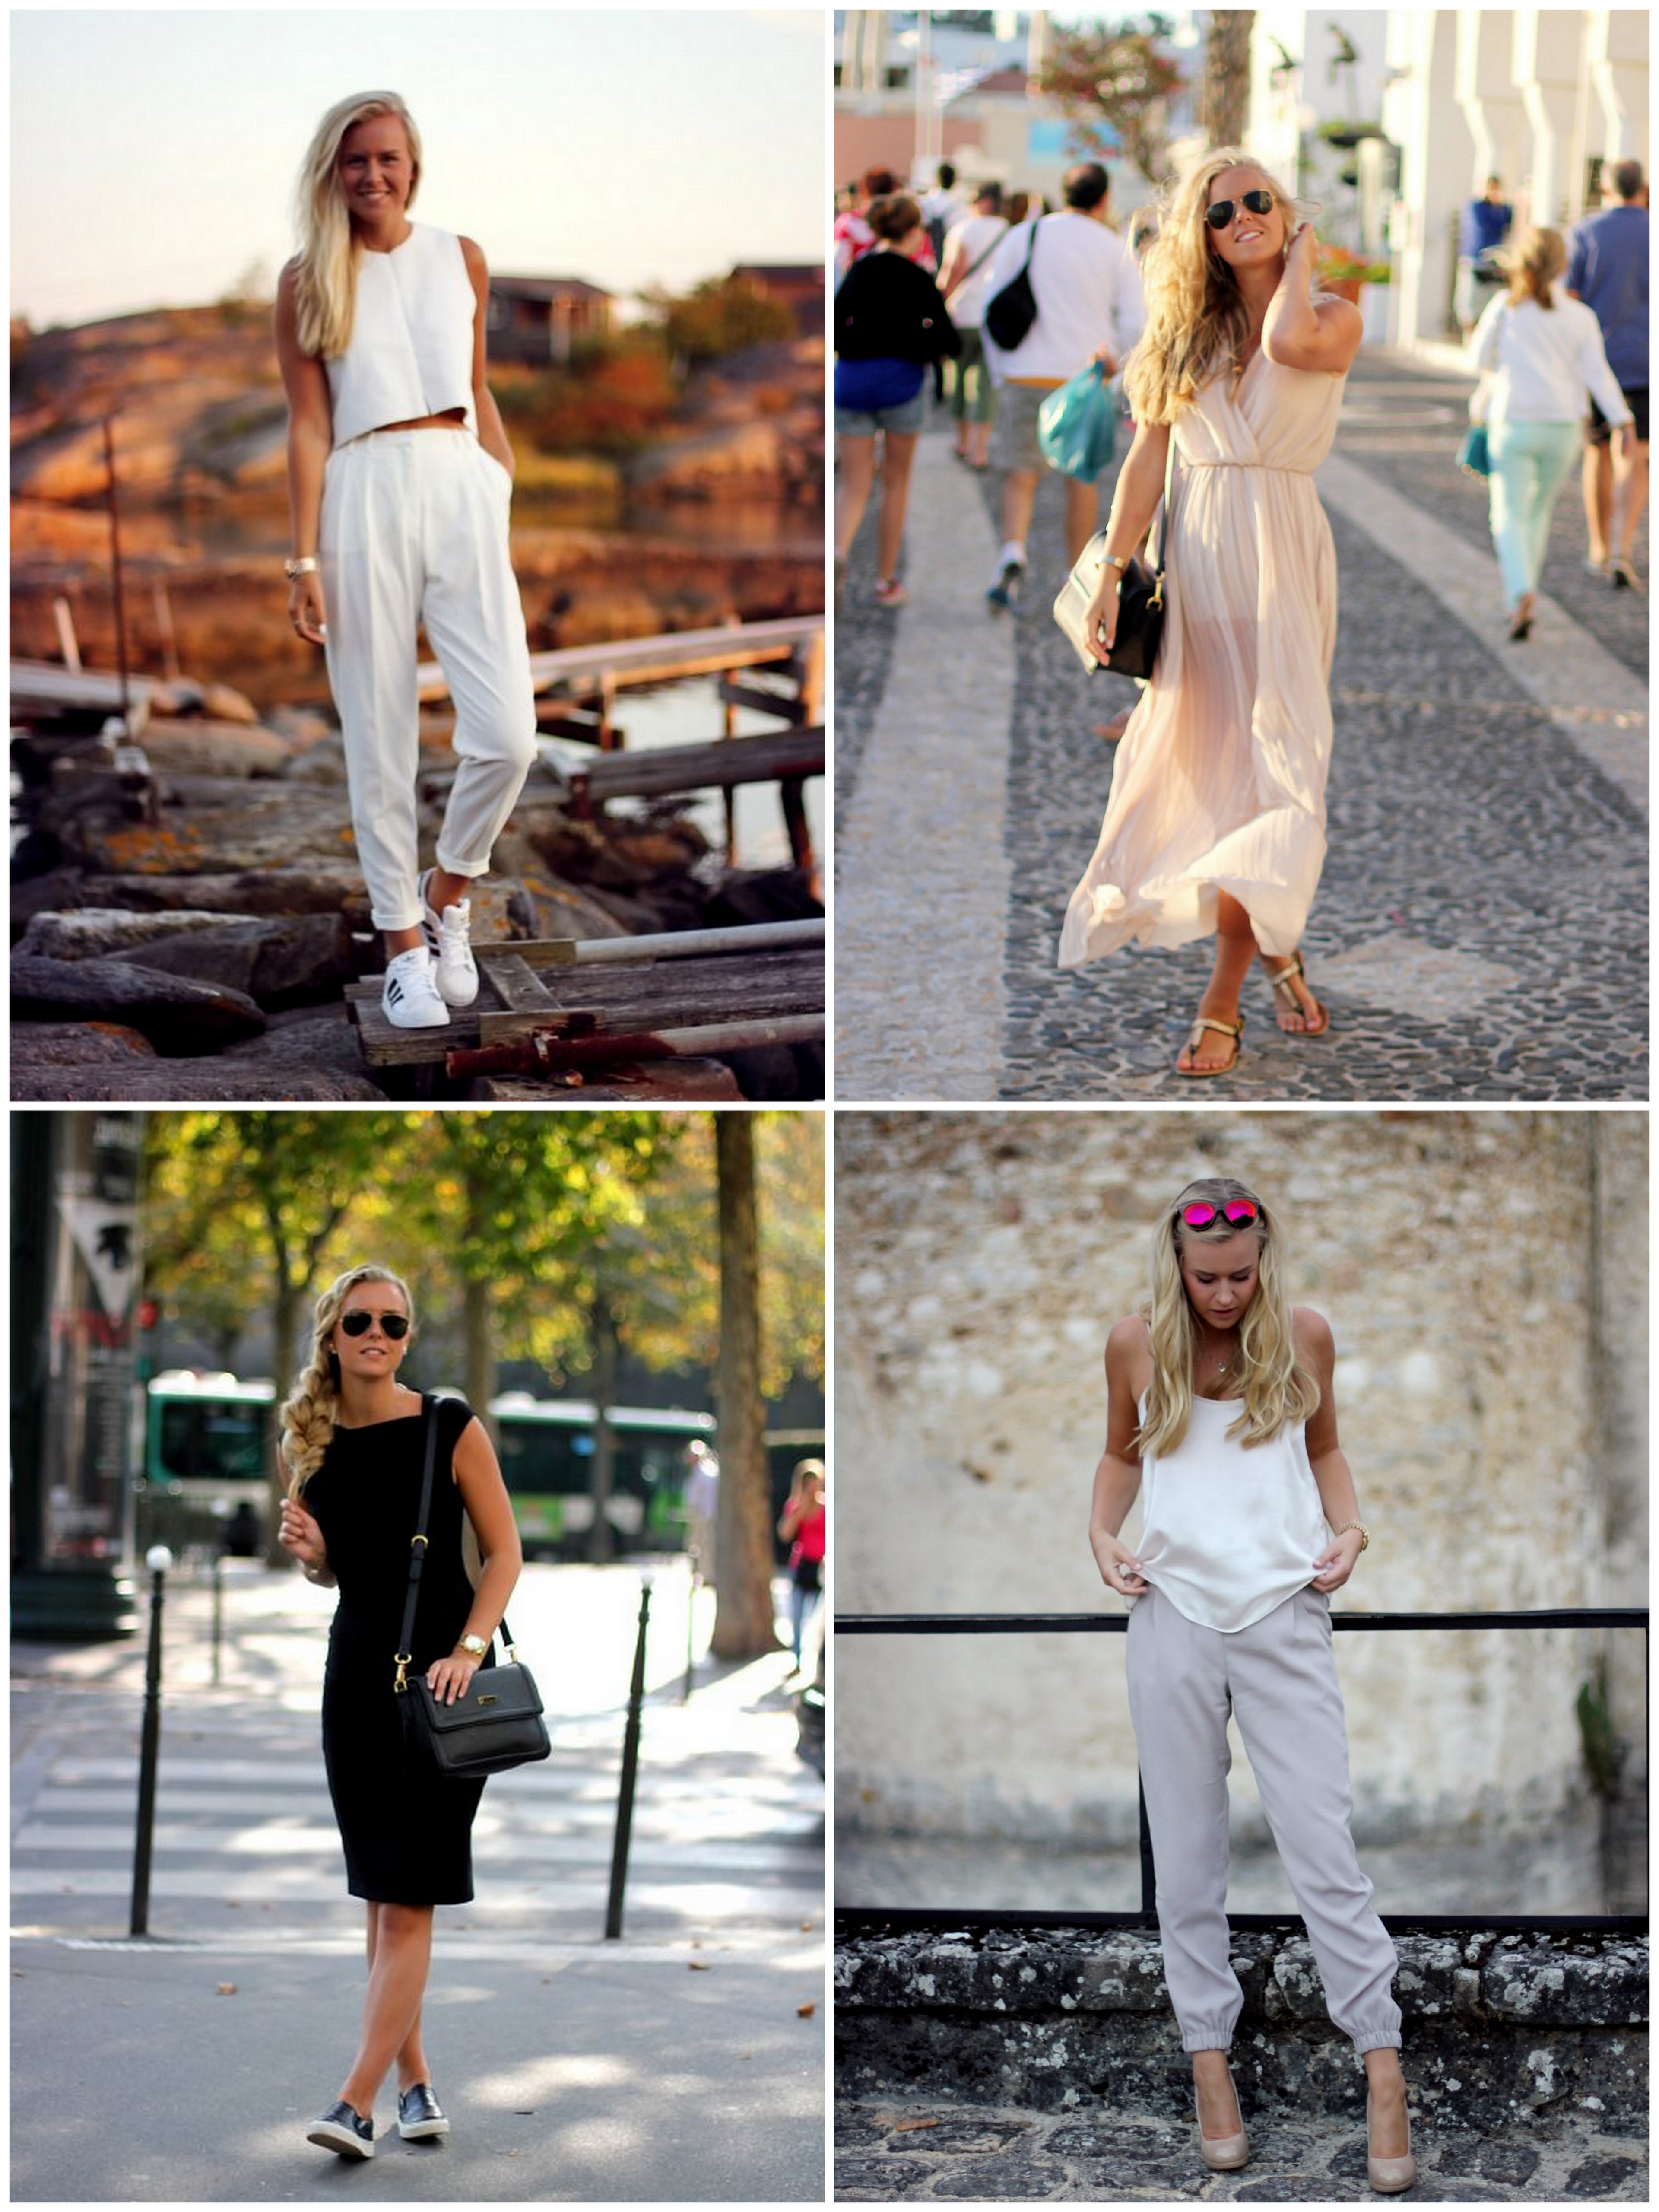 OUTFITS FROM LAST SUMMER